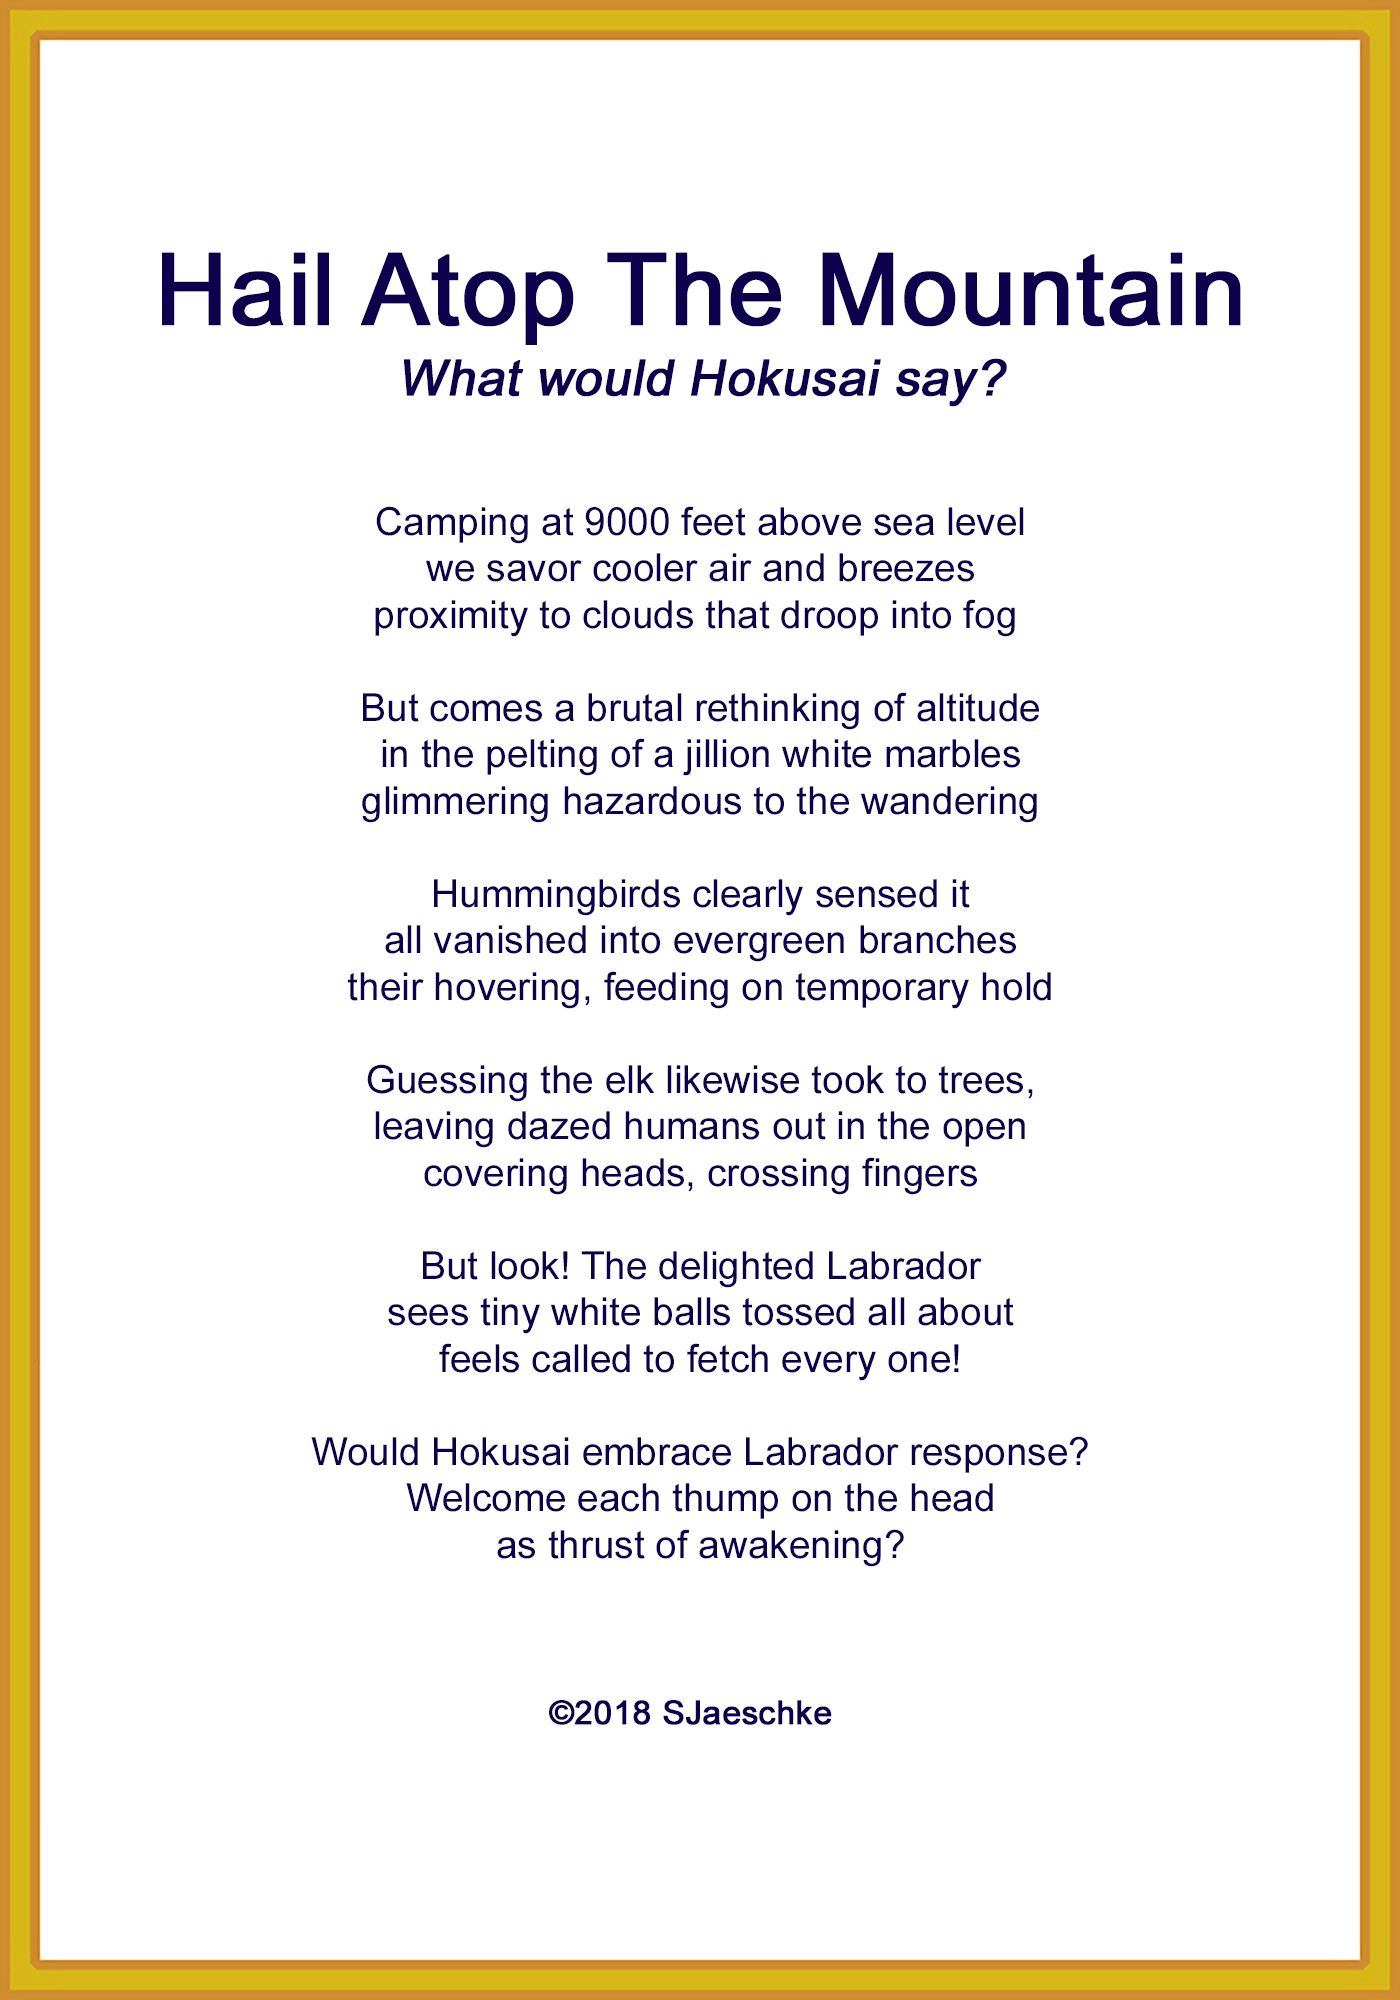 Post_2018-08-11_Poem_HailAtopMountain